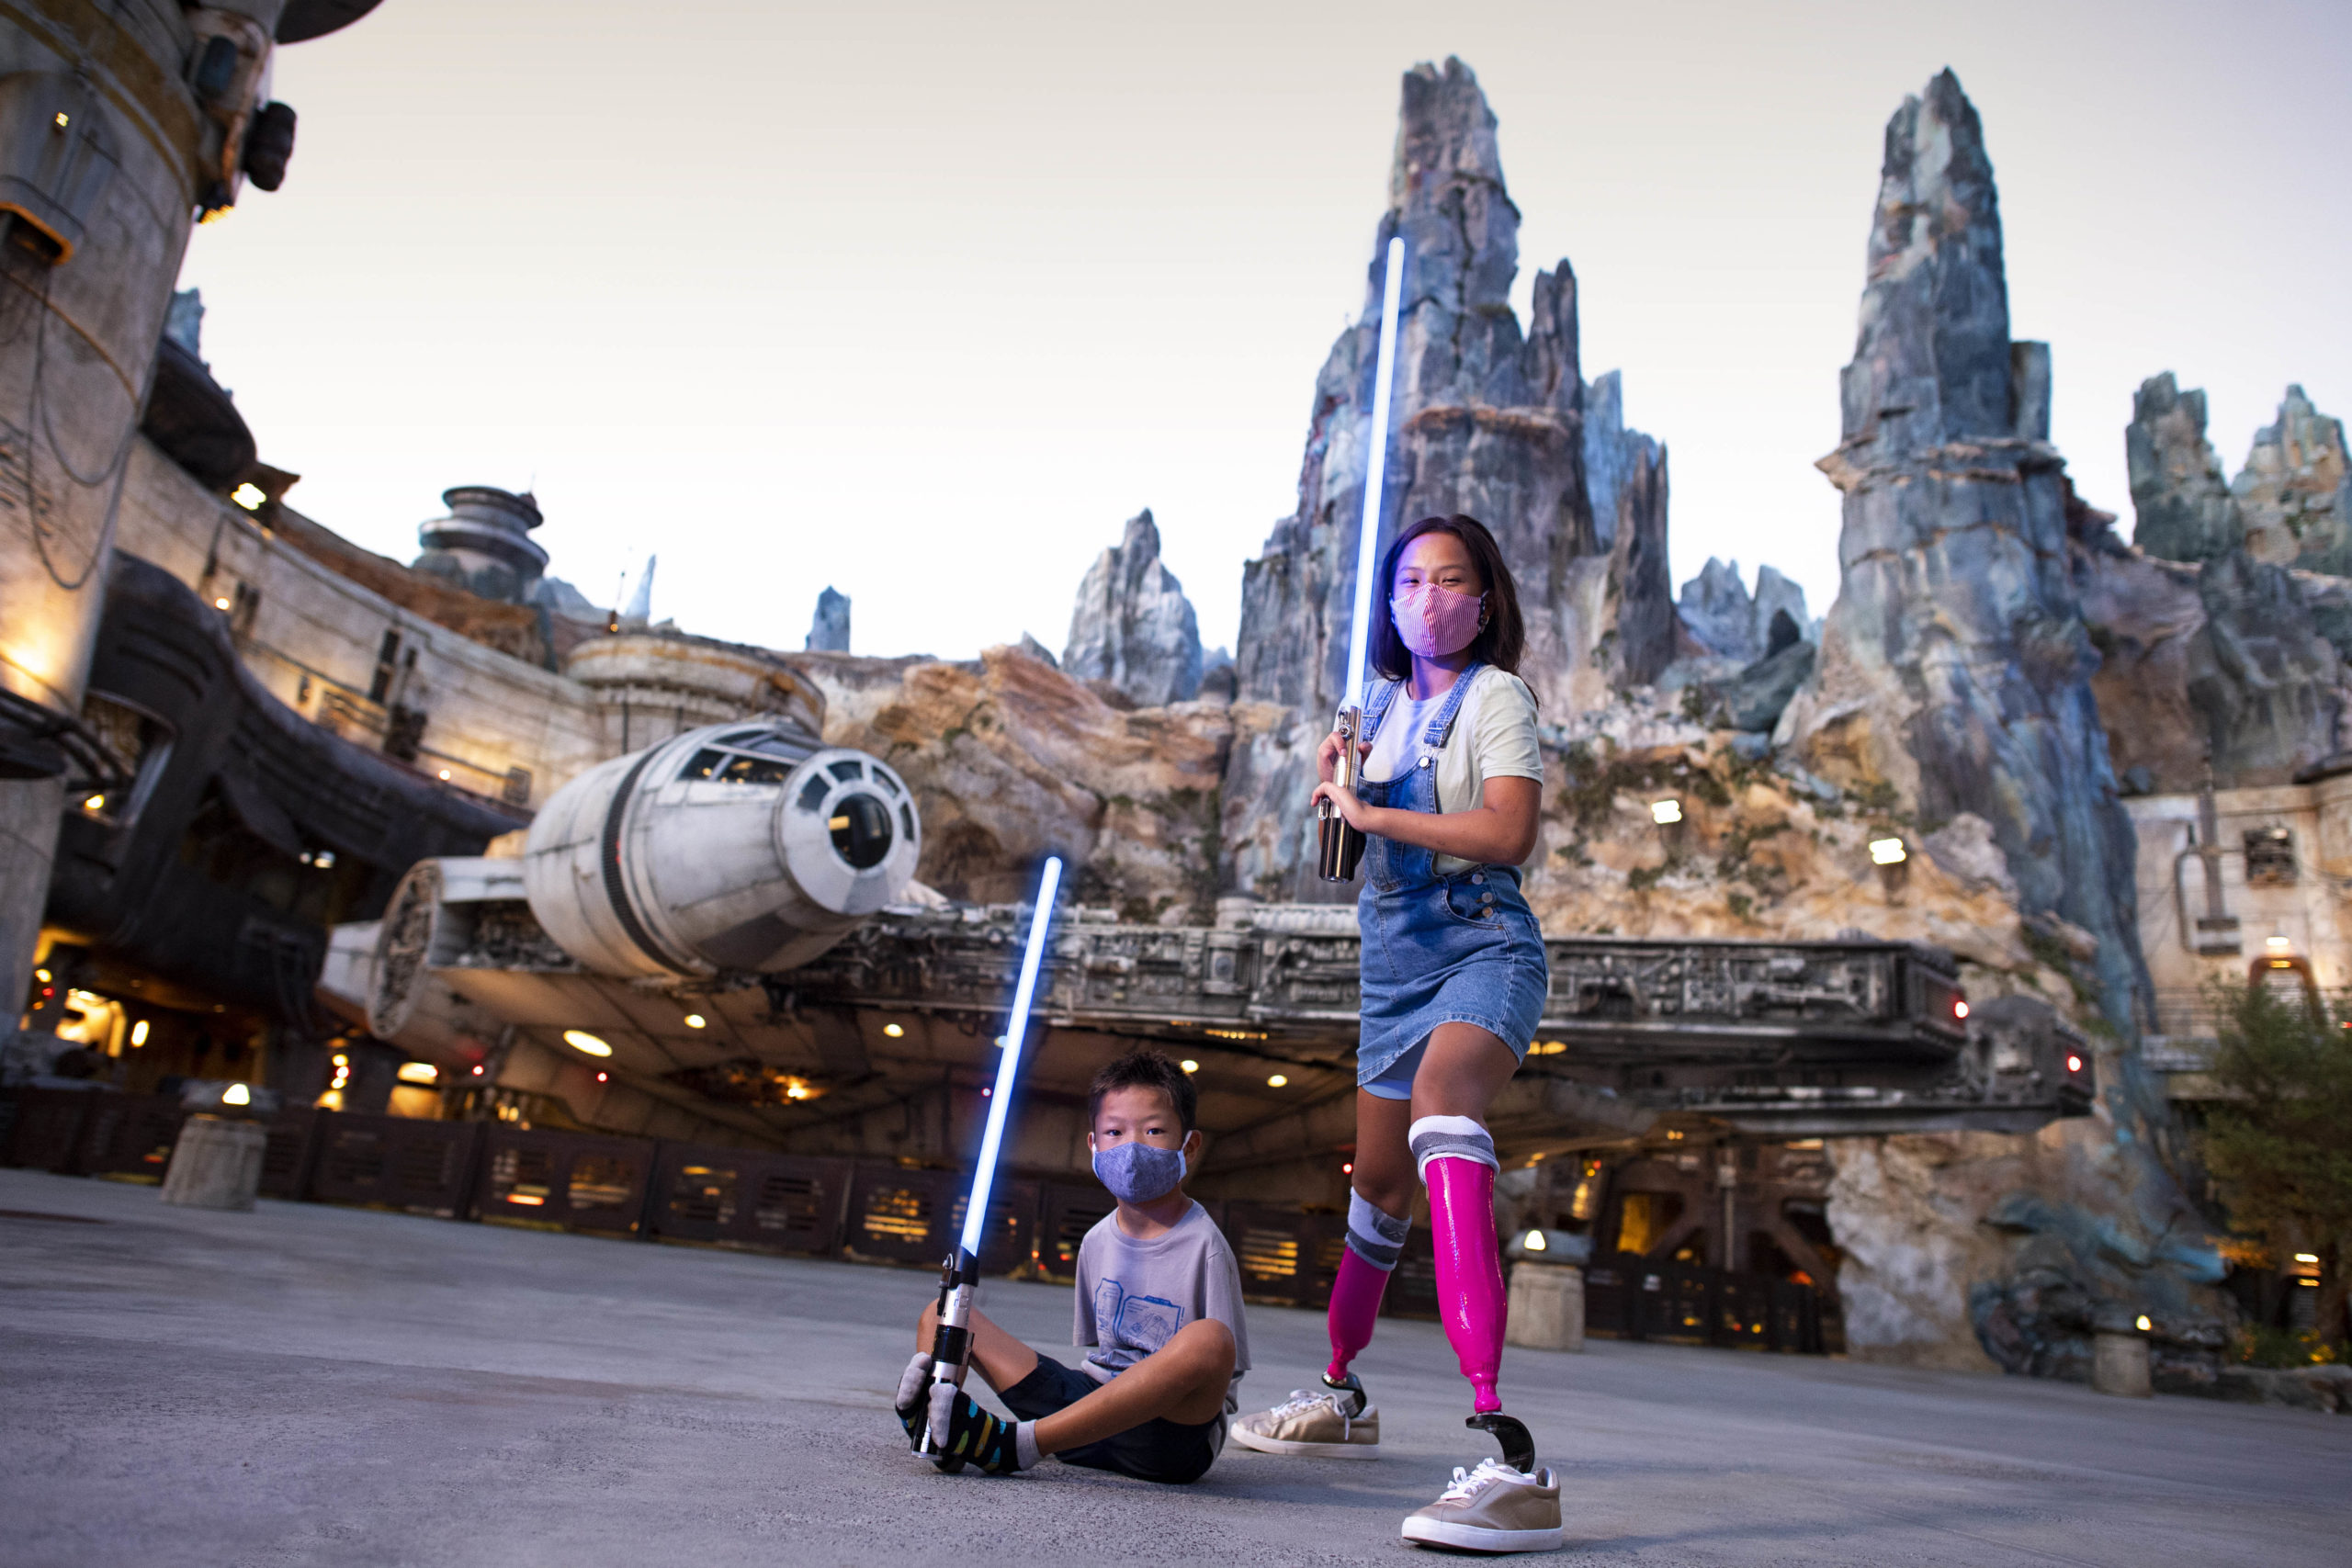 Kids with lightsabers at Disneyland